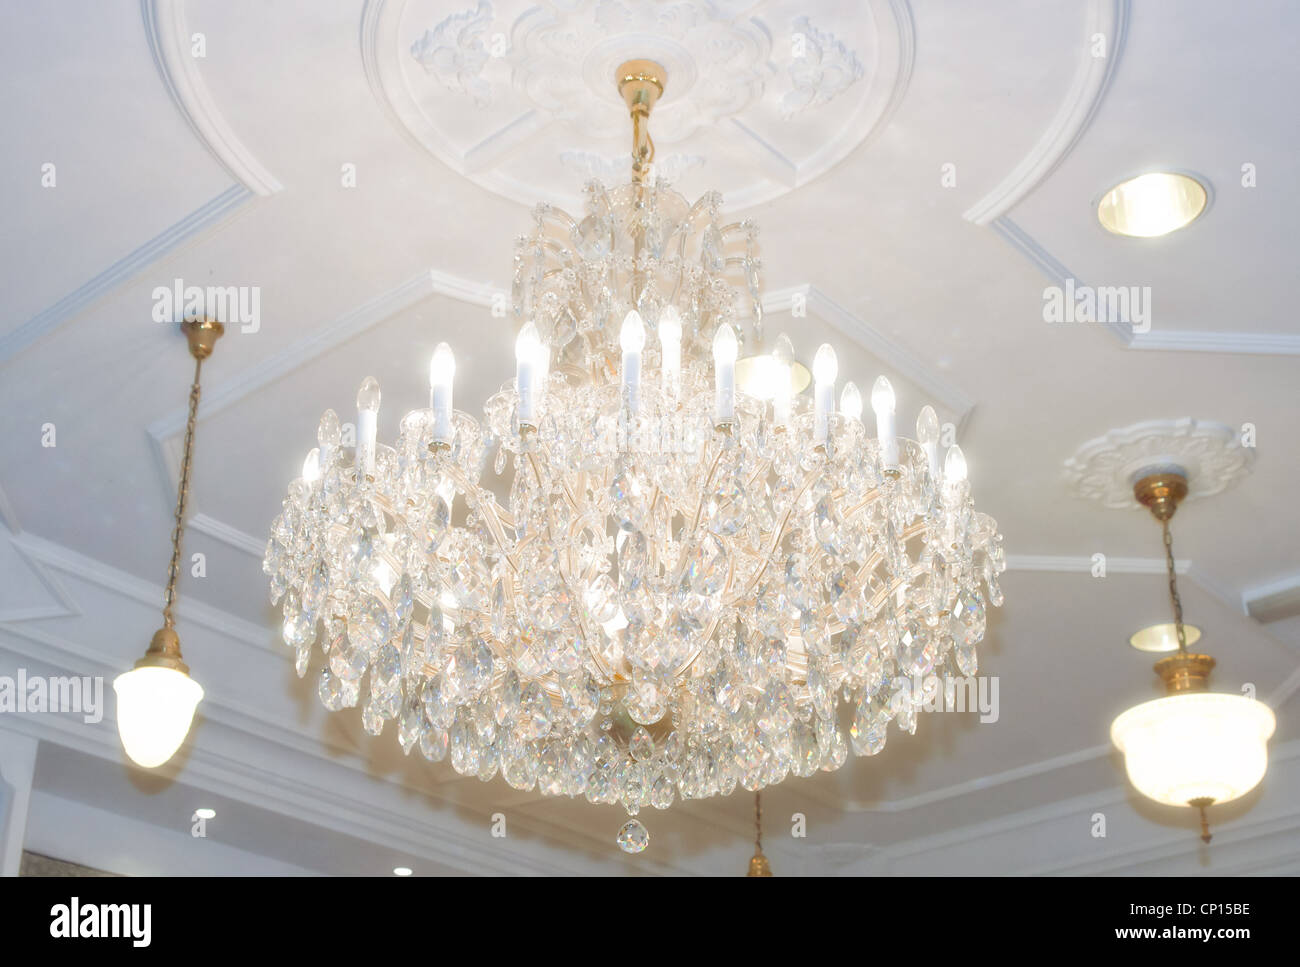 beautiful crystal chandelier hangs from the ceiling - Stock Image